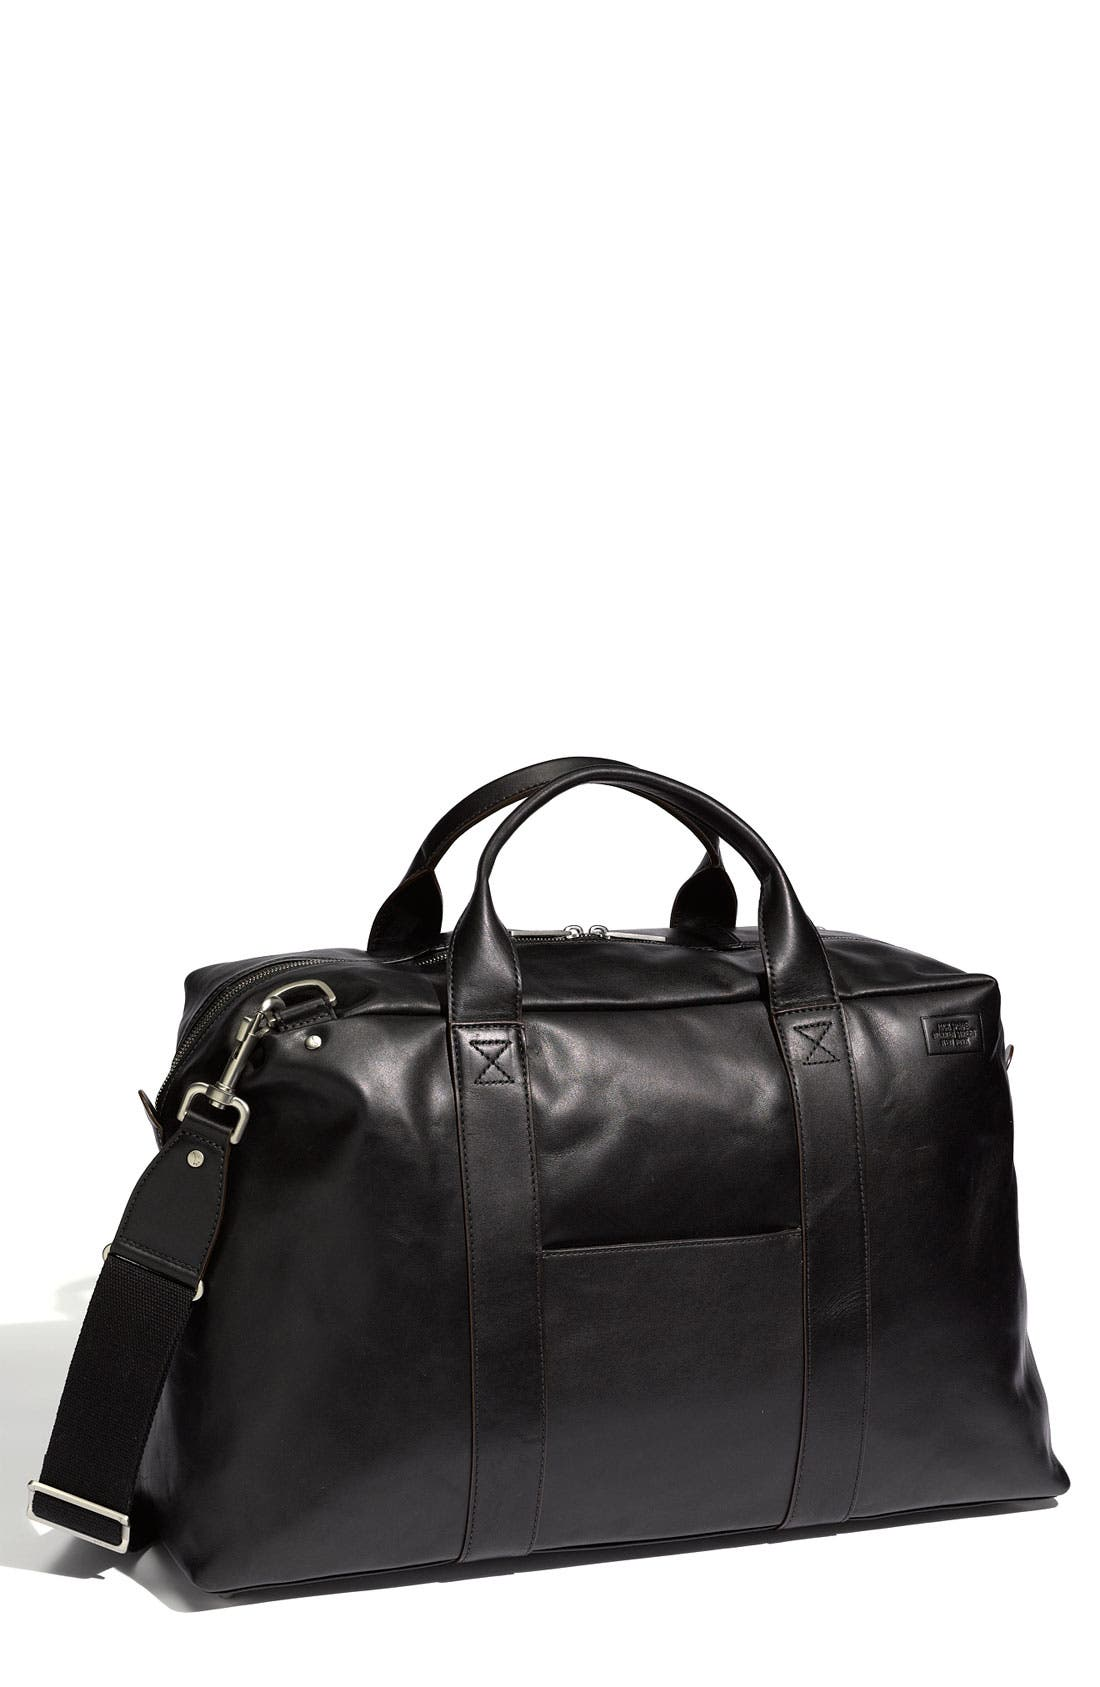 Main Image - Jack Spade 'Wayne' Leather Duffel Bag